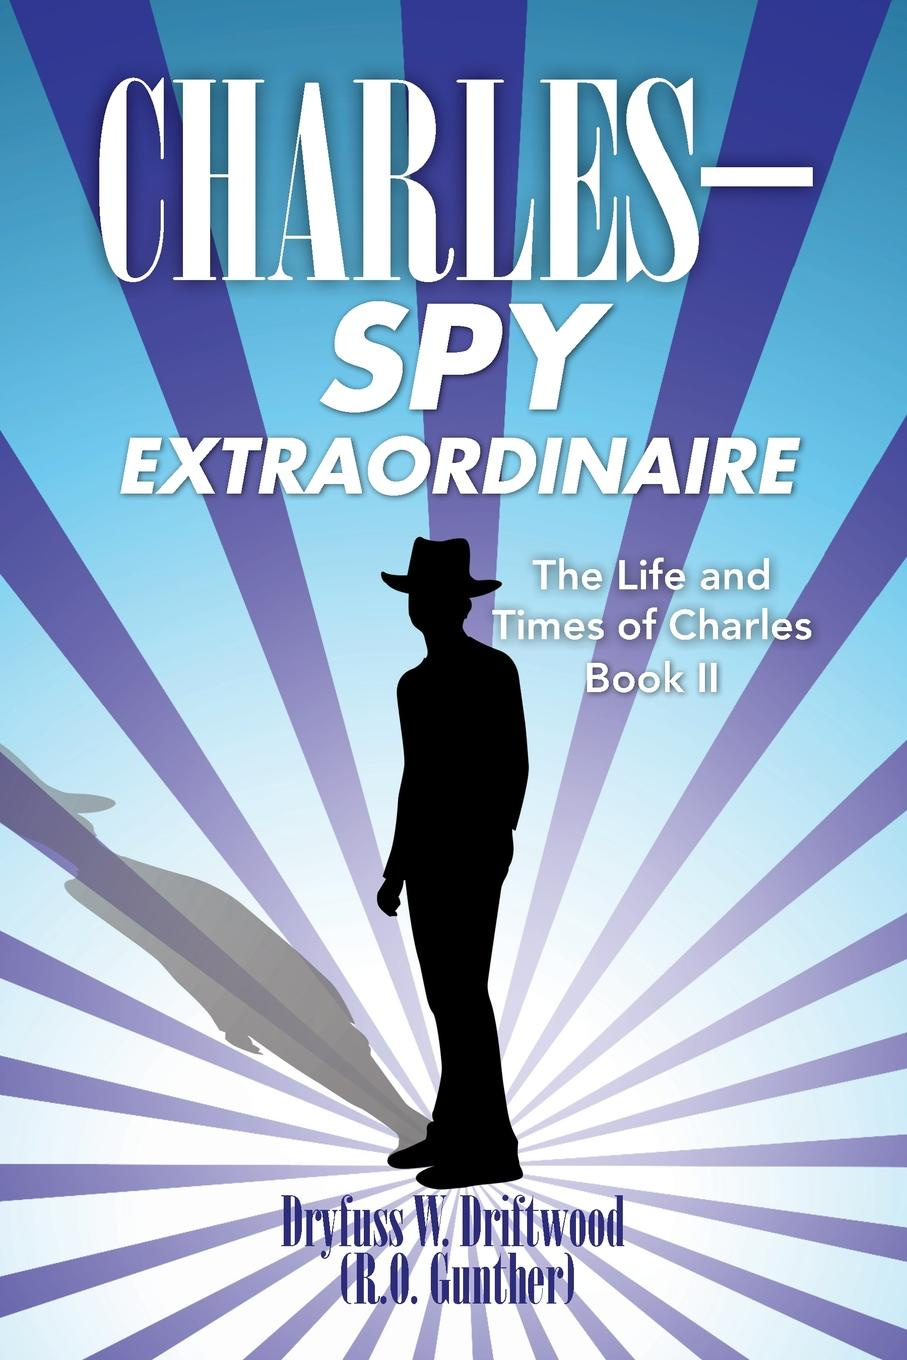 Dryfuss W. Driftwood The Life and Times of Charles. Book II: C H A R L E S Spy Extraordinaire c h i m e r a s